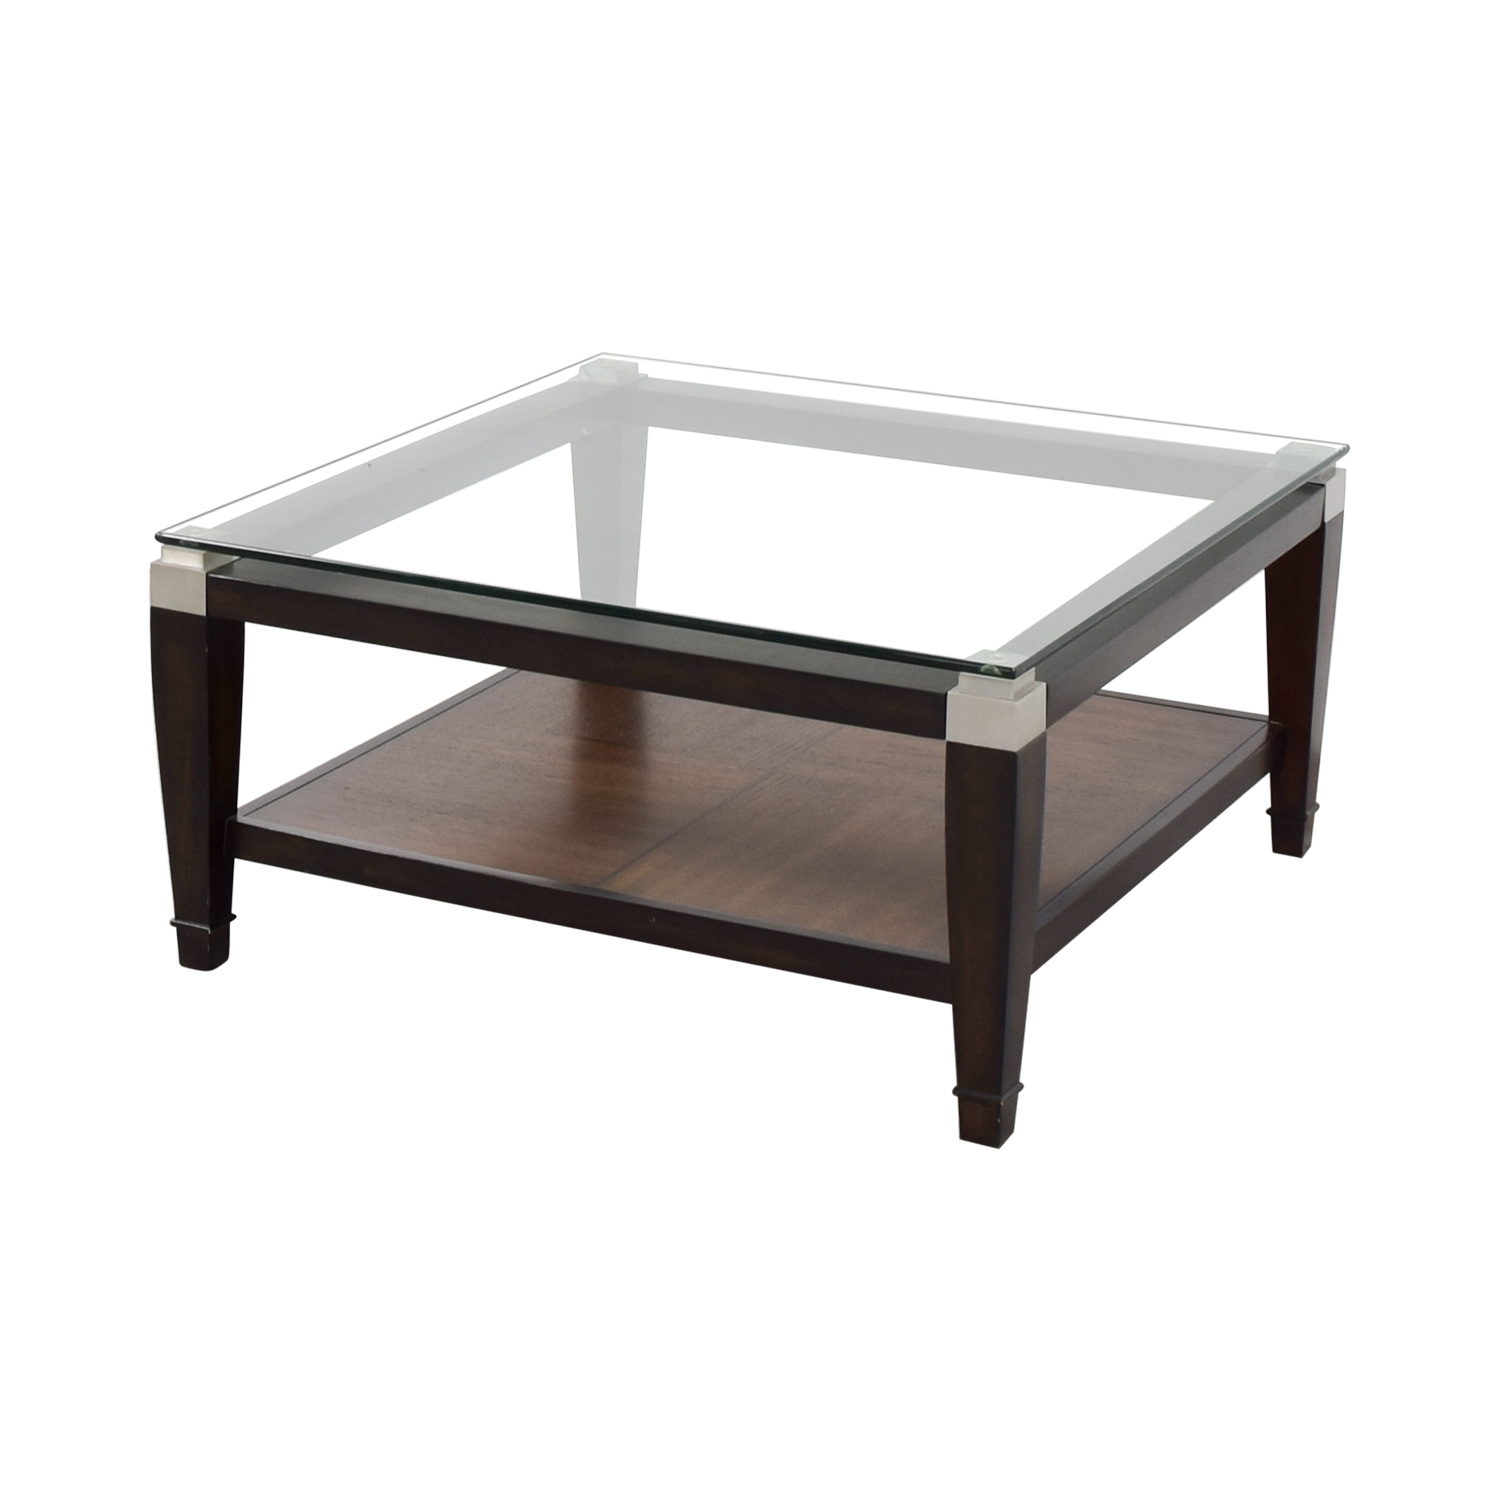 Raymour and Flanigan Raymour & Flanigan Wood and Glass Coffee Table Tables